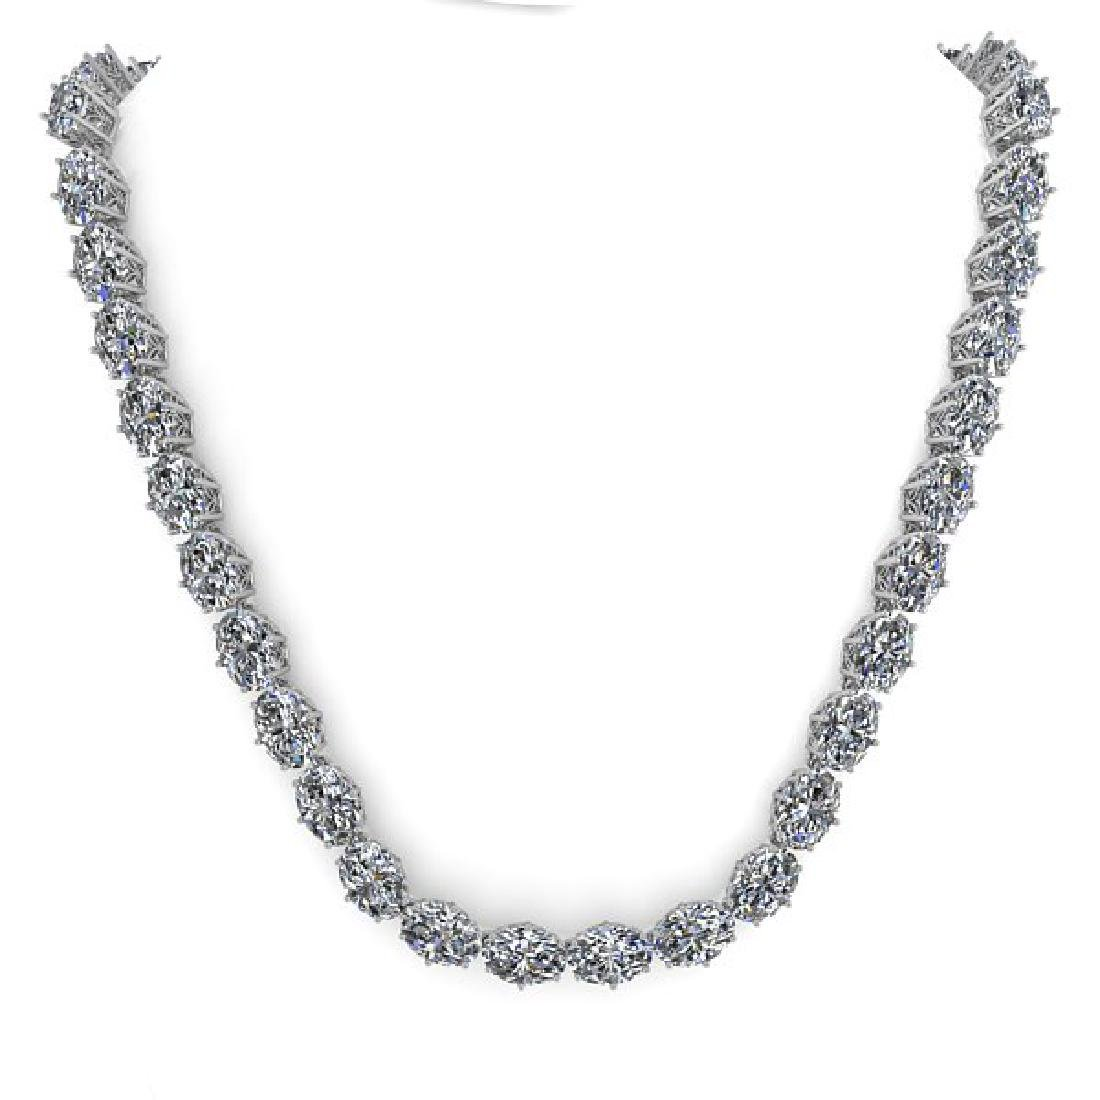 30 CTW Oval Cut SI Diamond Necklace 18K White Gold - 3